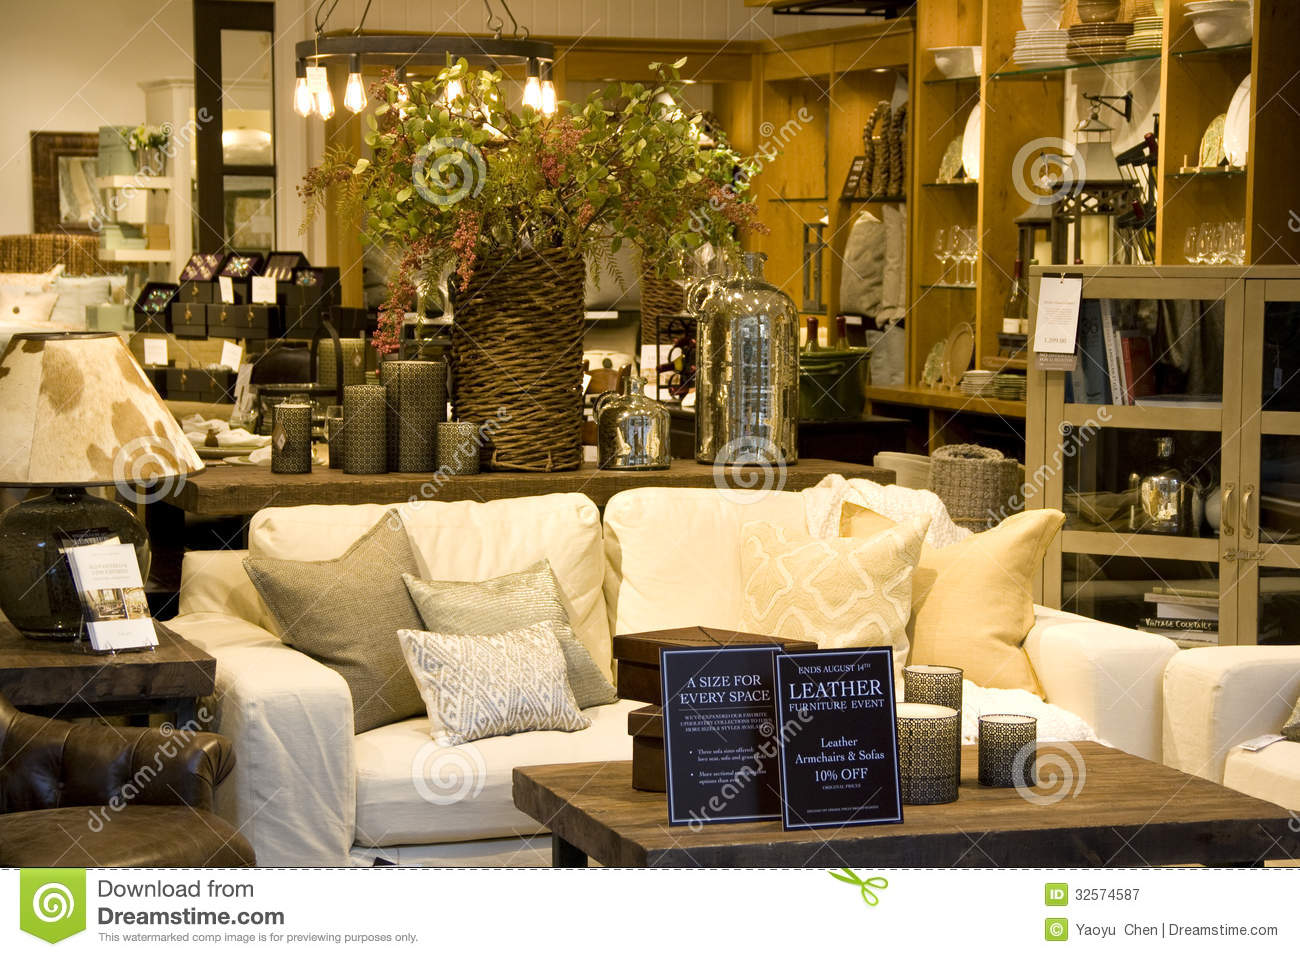 Furniture+Store